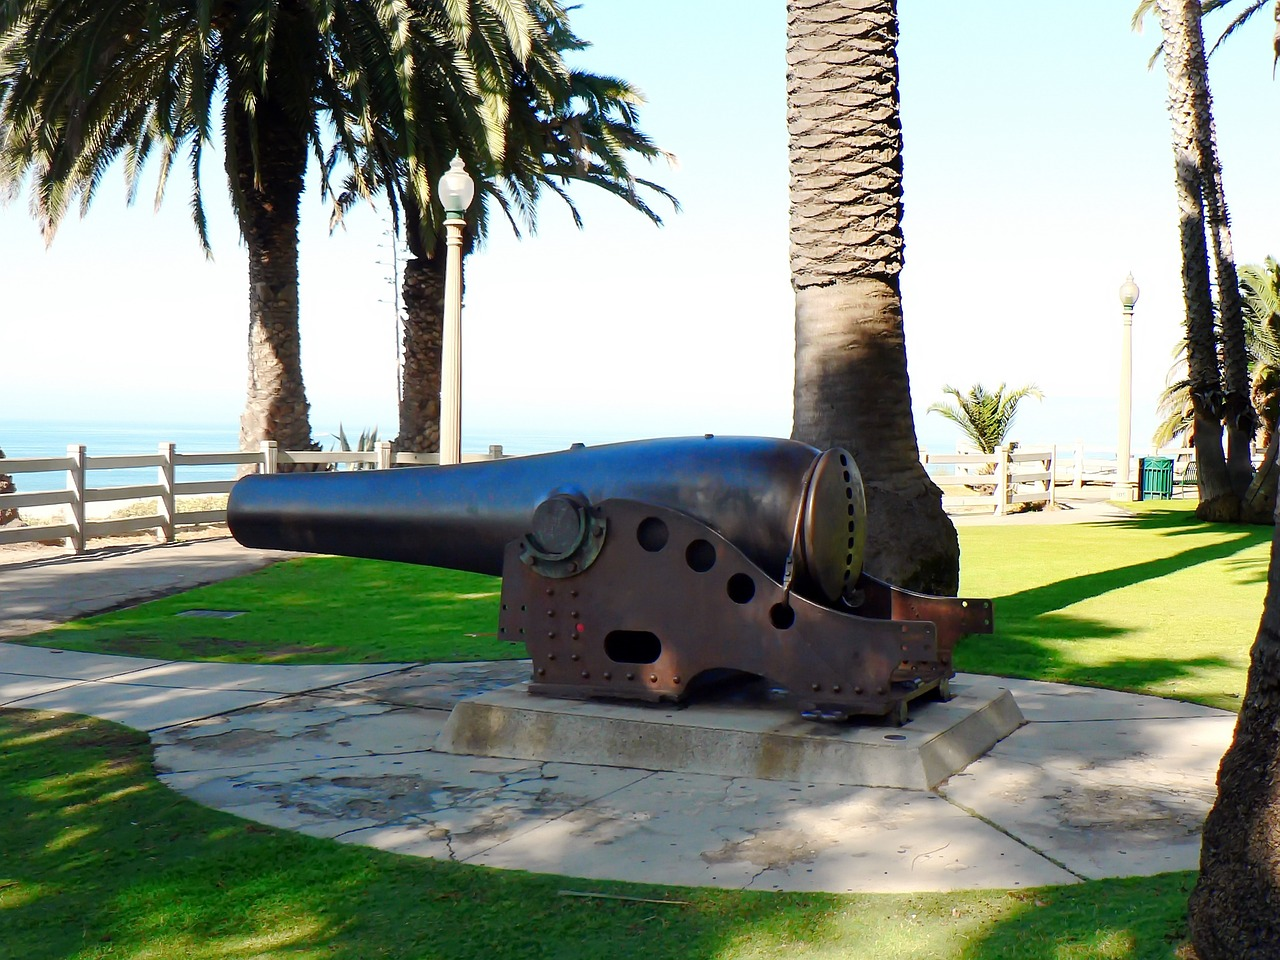 Cannon on the Santa Monica Waterfront